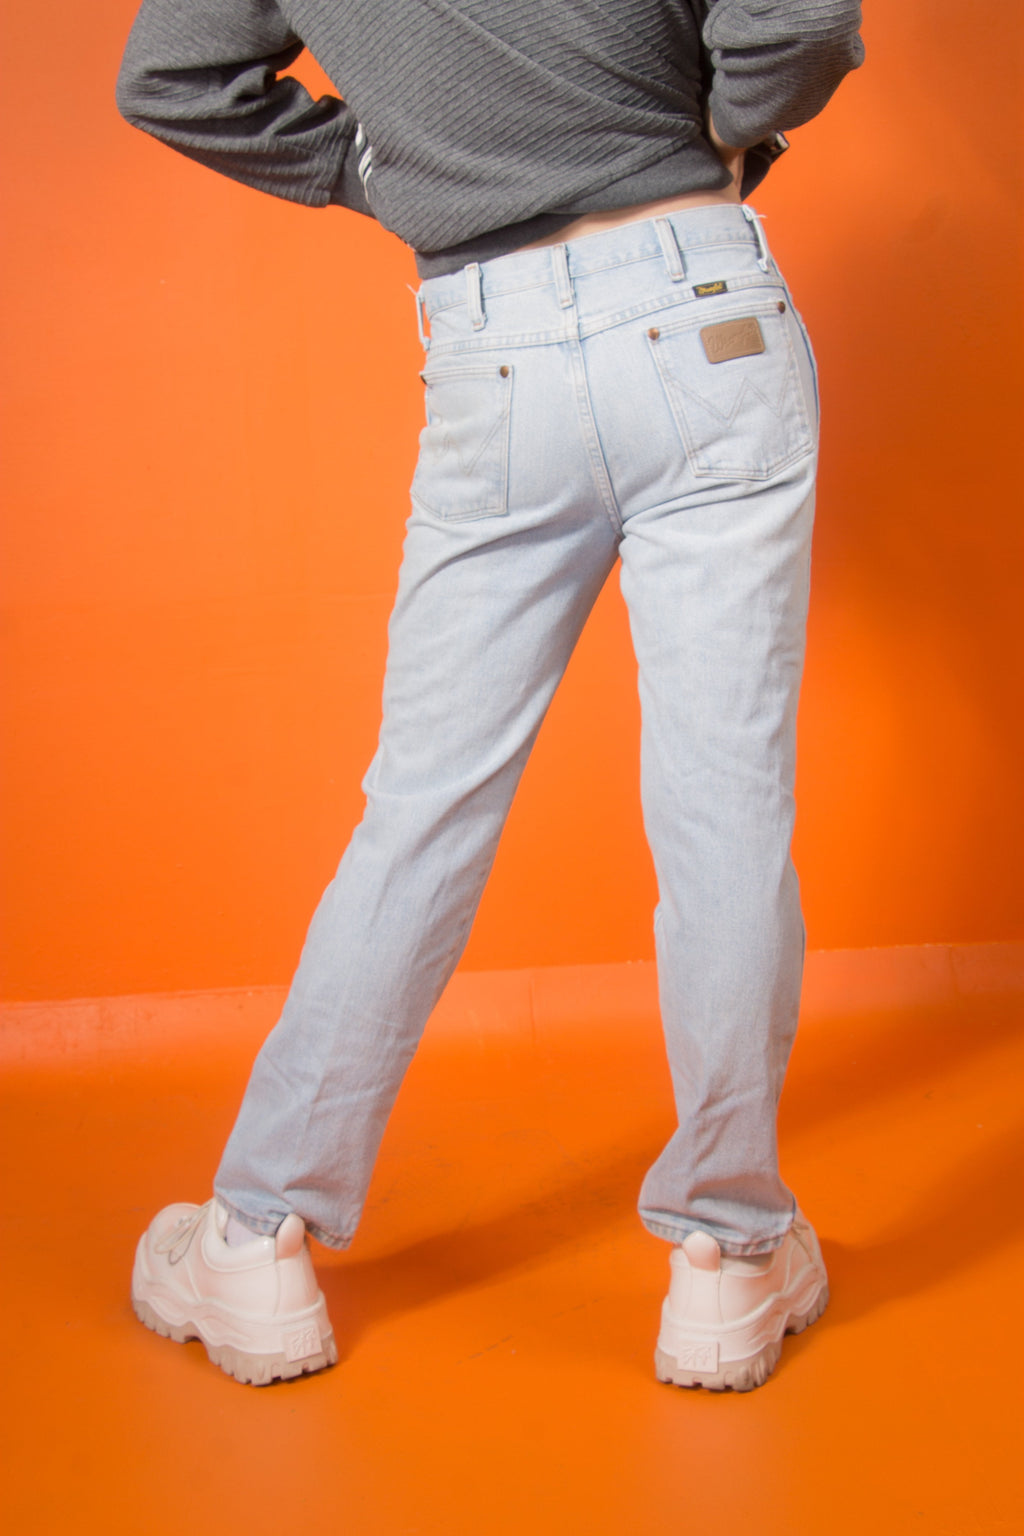 Vintage - light wash wrangler jeans